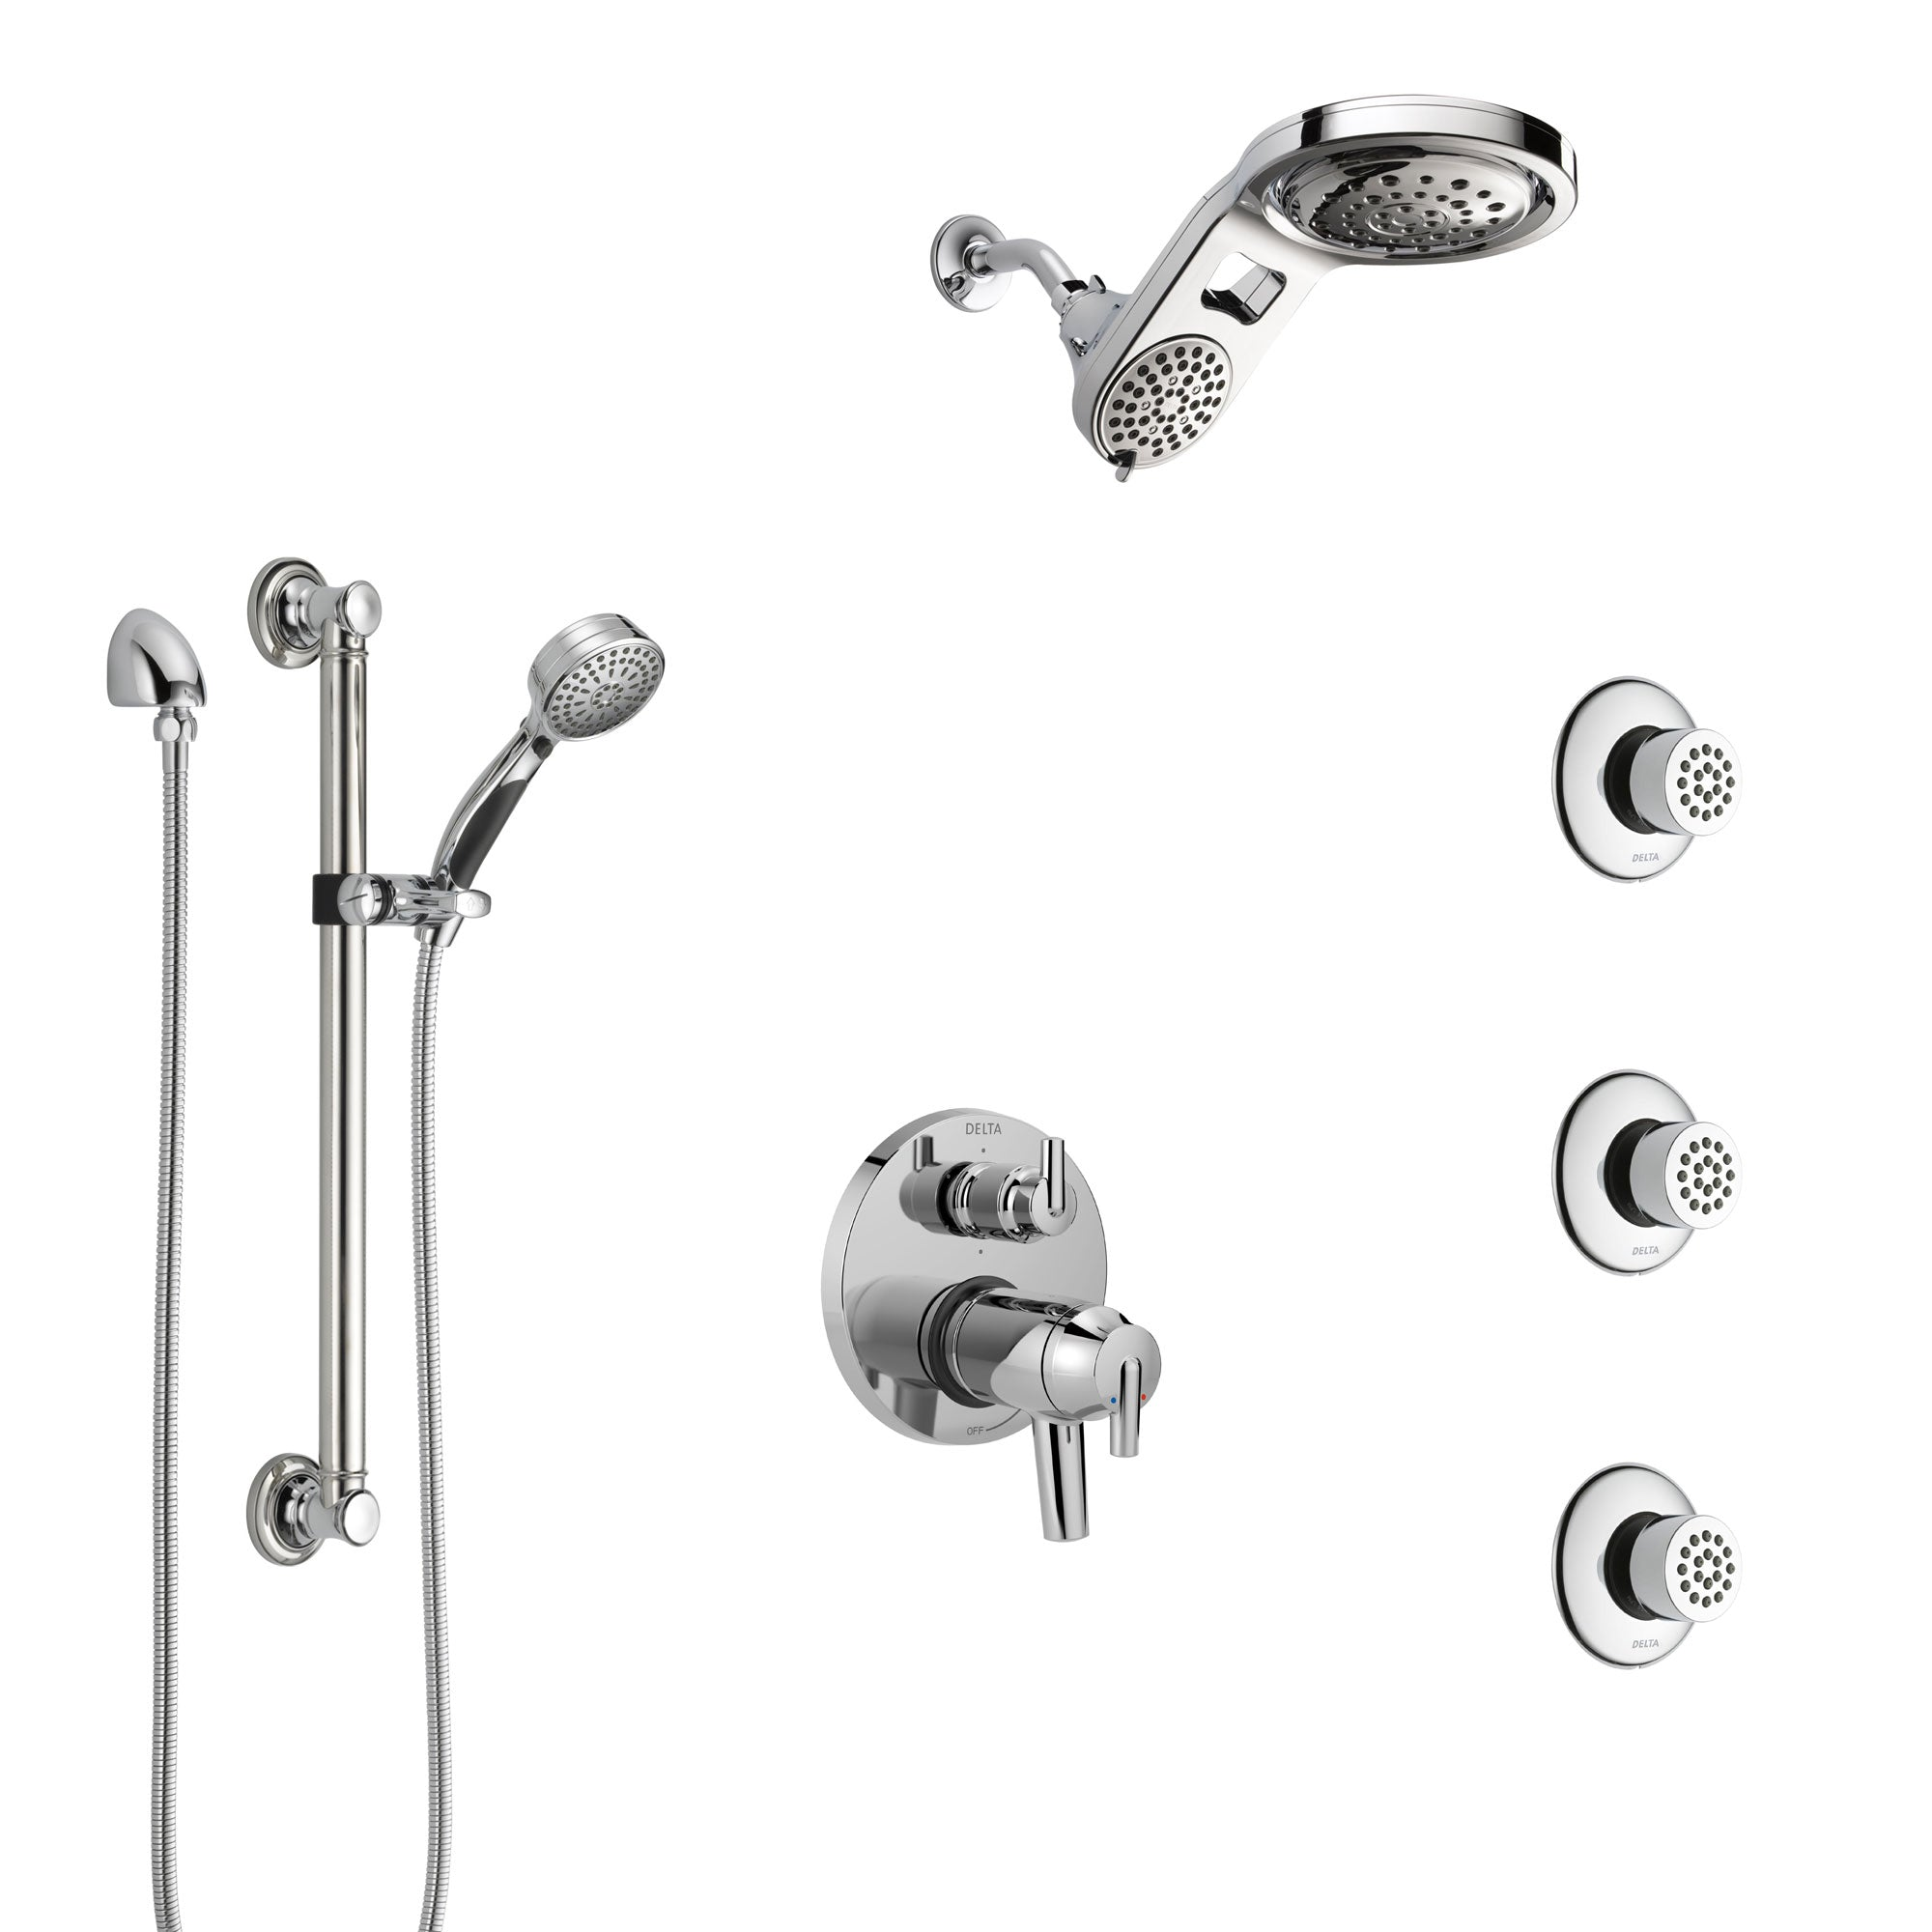 Delta Trinsic Chrome Dual Thermostatic Control Integrated Diverter Shower System, Dual Showerhead, 3 Body Sprays, and Grab Bar Hand Shower SS27T9599